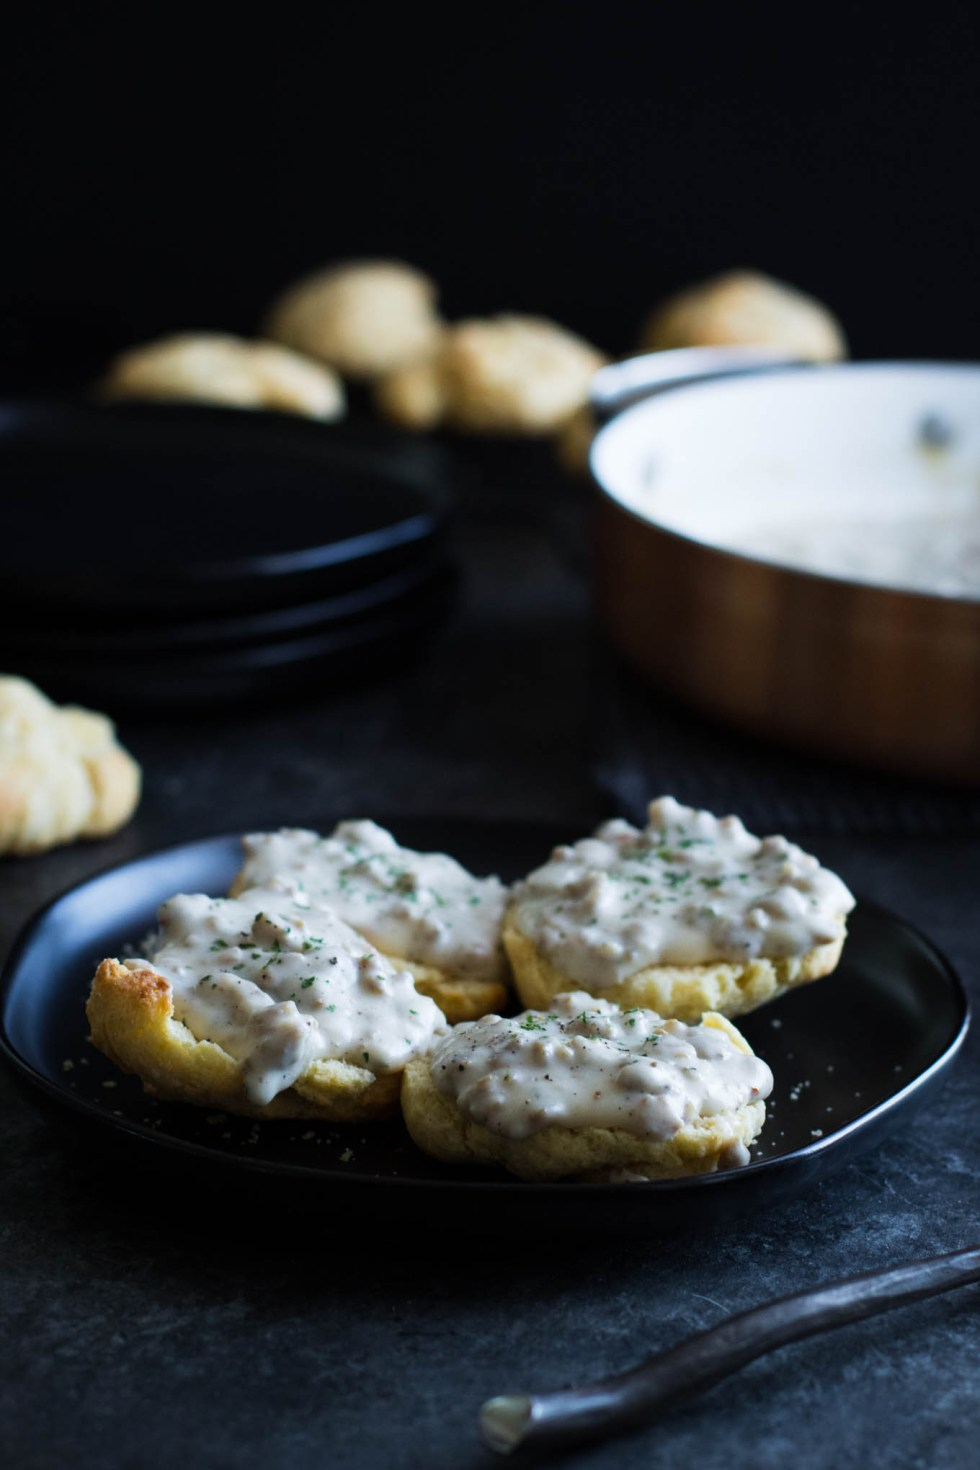 Quick and easy corn biscuits, smothered in homemade sausage gravy! This recipe is perfect for Saturday morning breakfast or Sunday brunch!